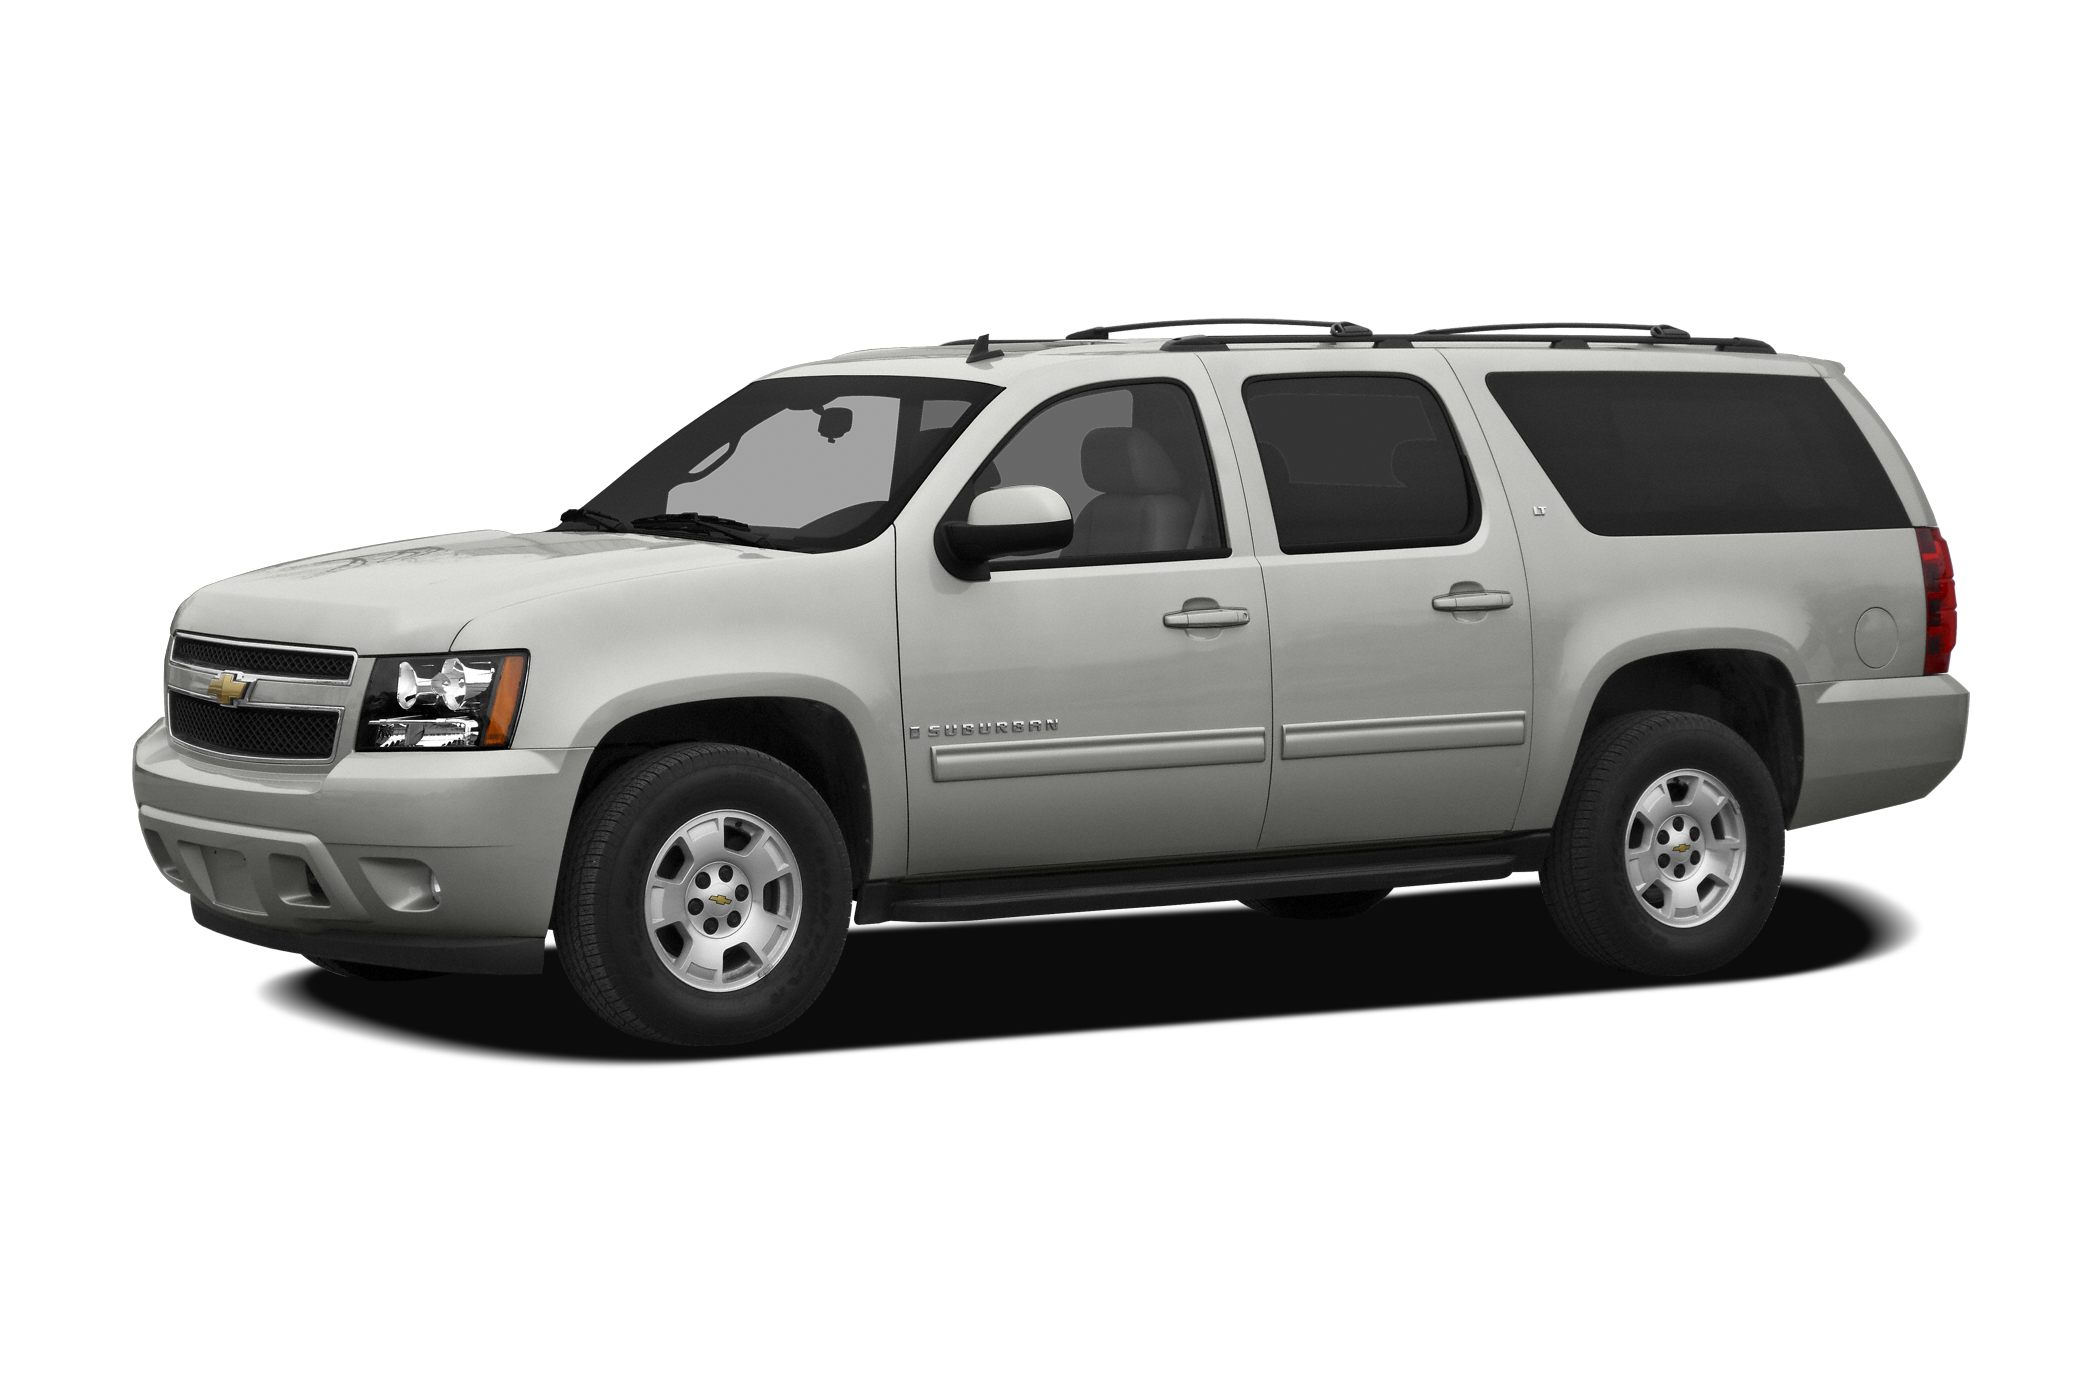 2010 Chevrolet Suburban 1500 LT SUV for sale in Grand Rapids for $24,900 with 101,502 miles